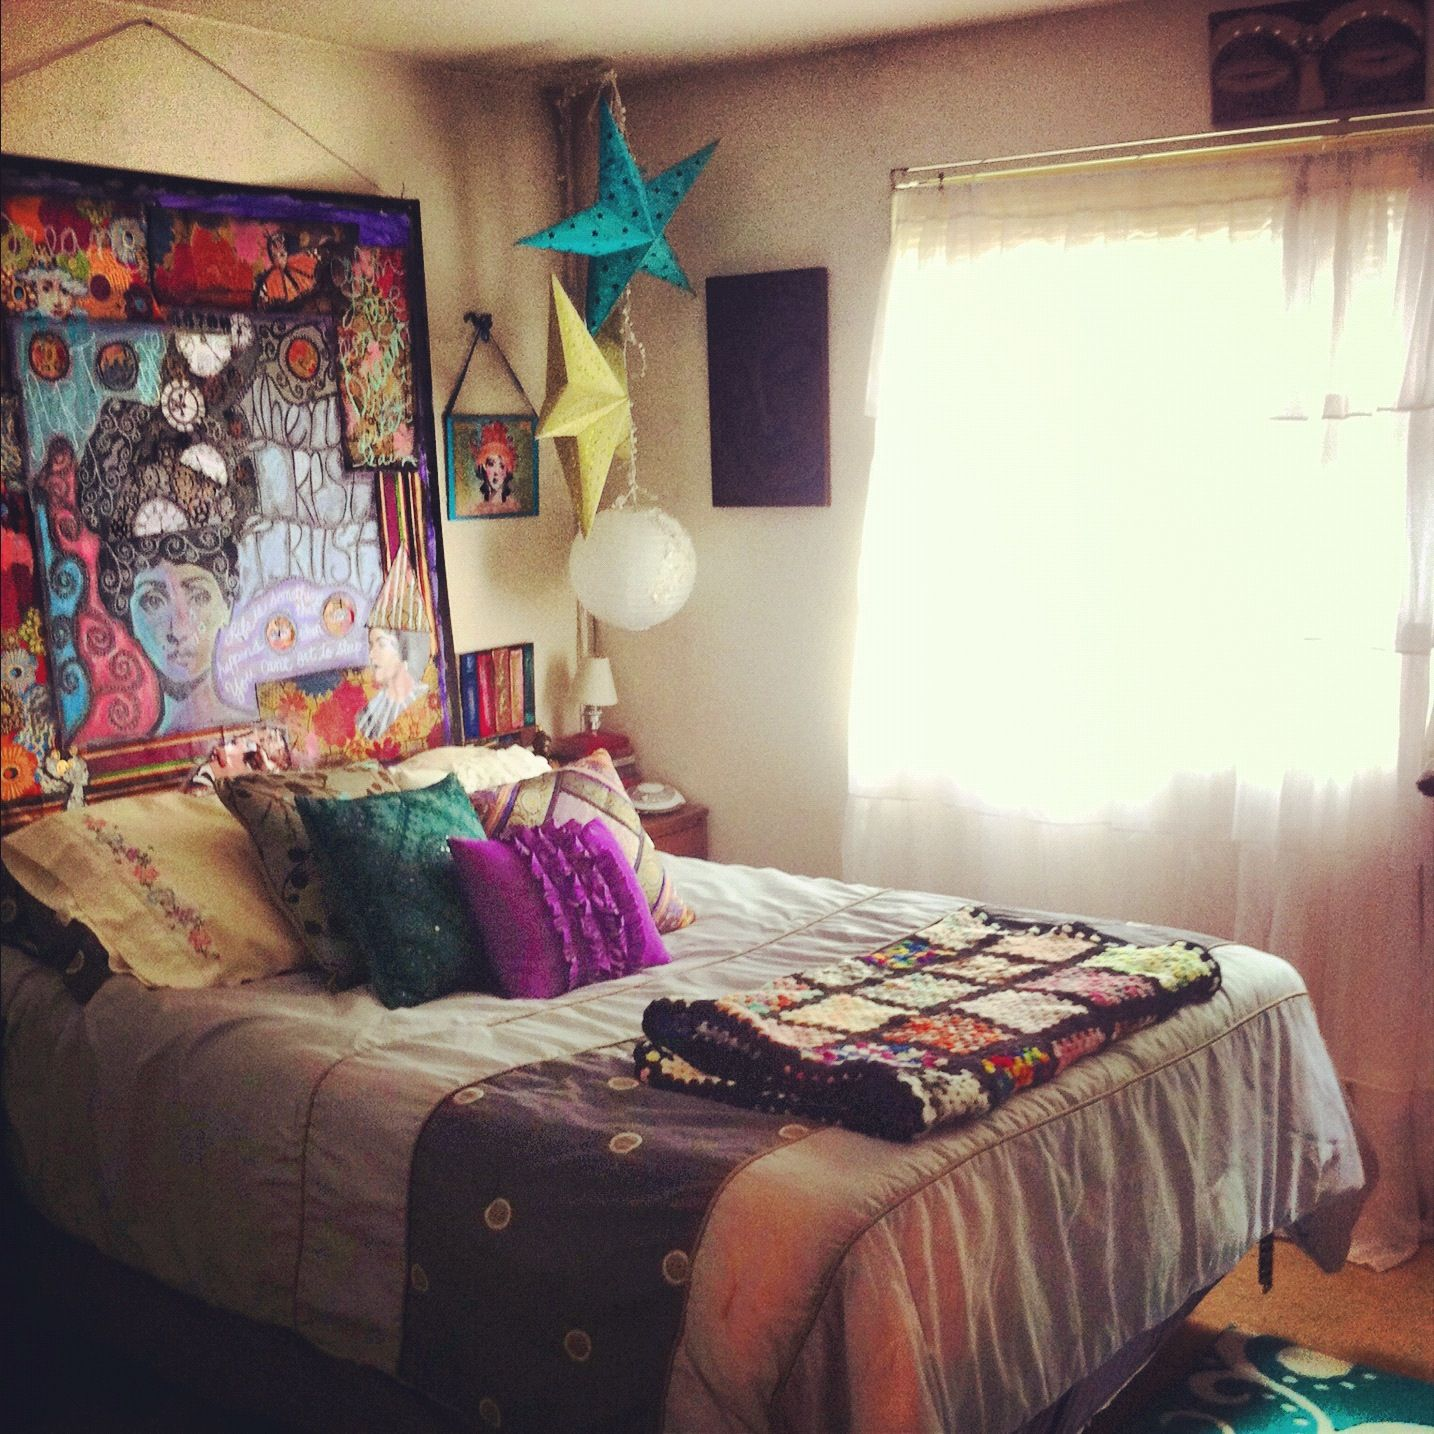 exciting bedroom style bohemian bedding | Bohemian bedroom #creativityElevated | Bohemian style ...